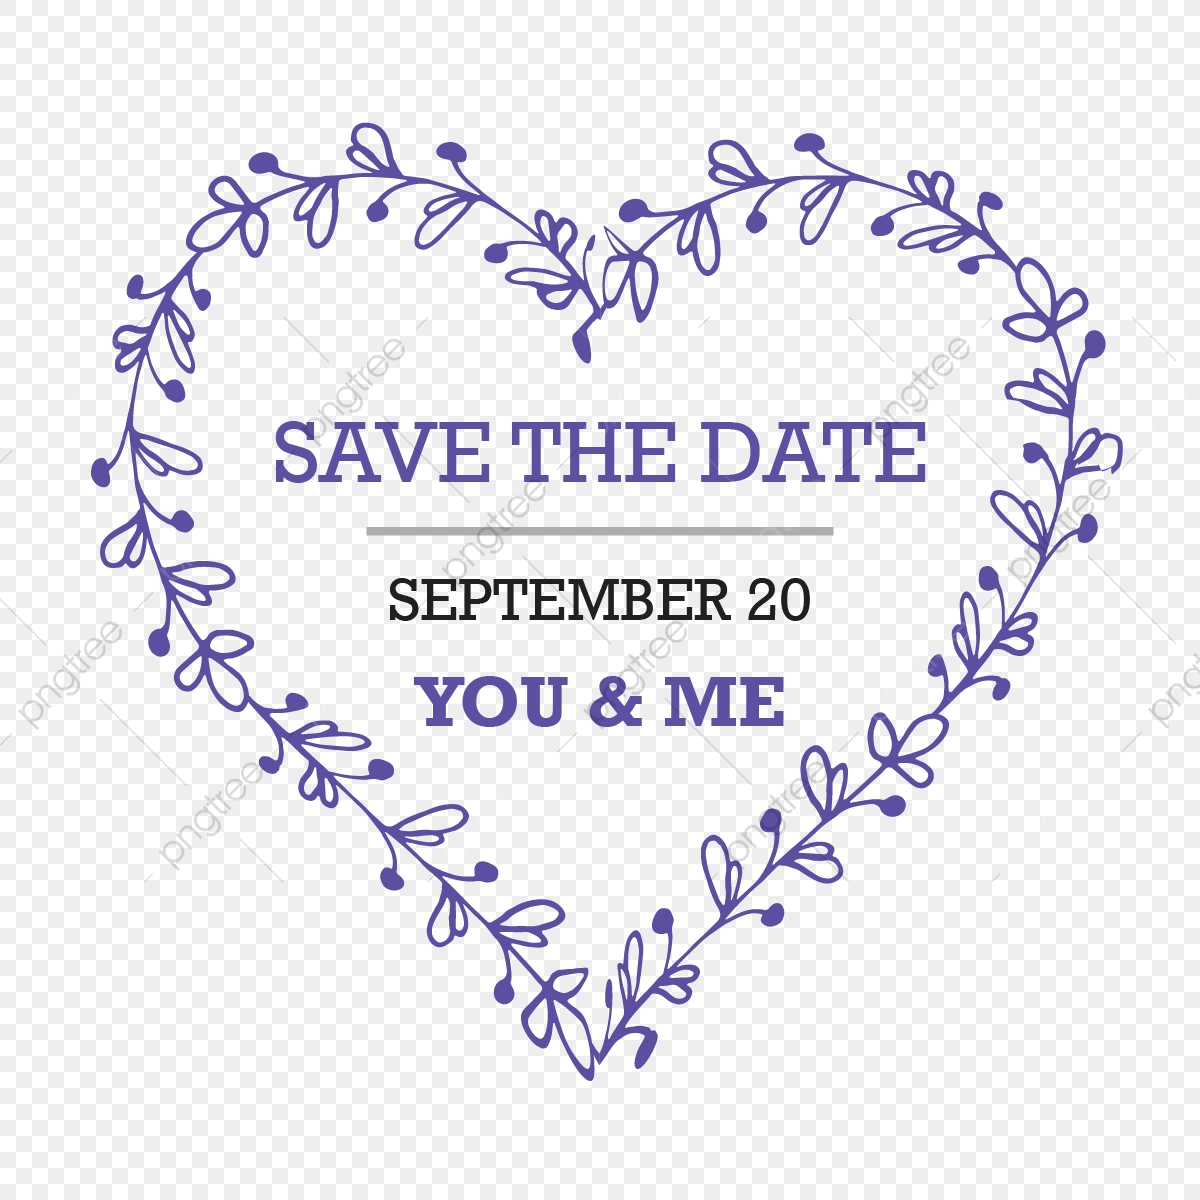 Botanical Flower Heart Save The Date Wedding Title, Floral, Heart.